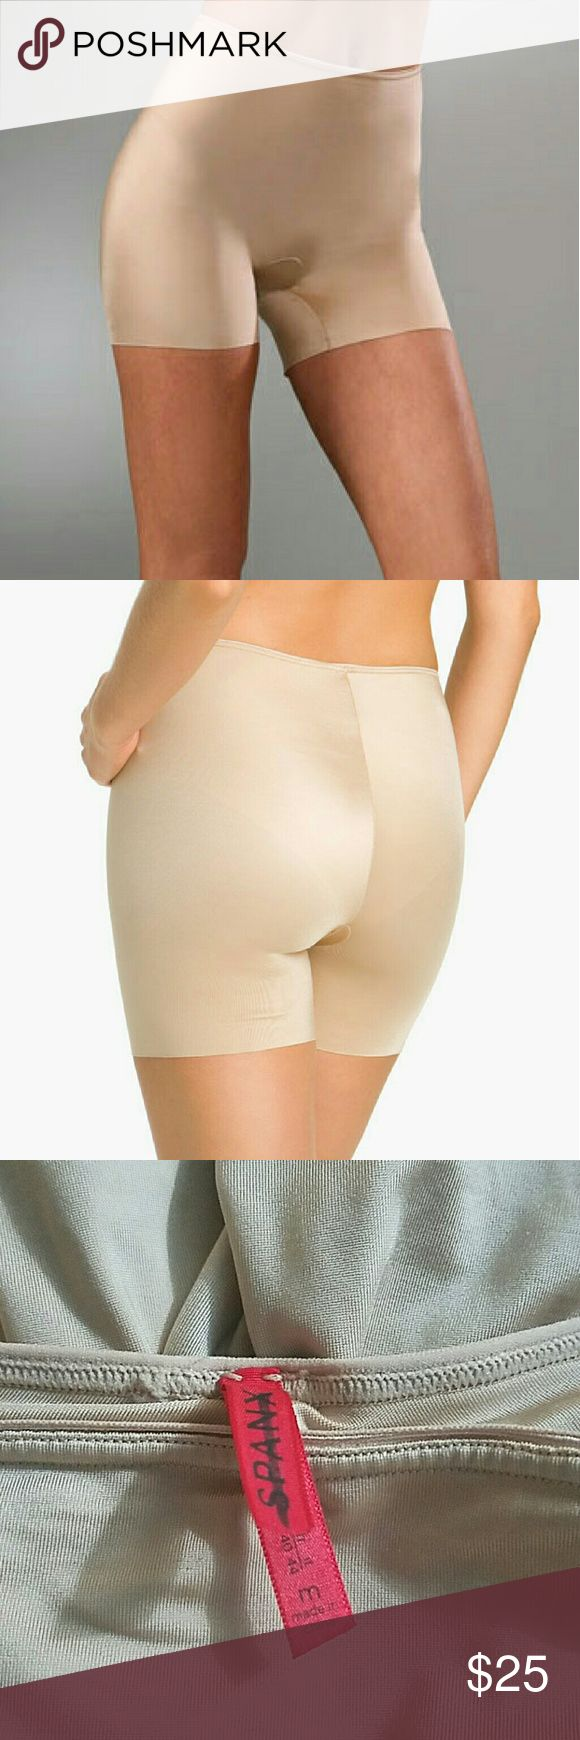 Spanx slimplicity short shaper in medium nude new without tag in perfect condition was a floor display in a dept store. Laser cut in the hem made of nylon fits 6 to 8 SPANX Intimates & Sleepwear Shapewear